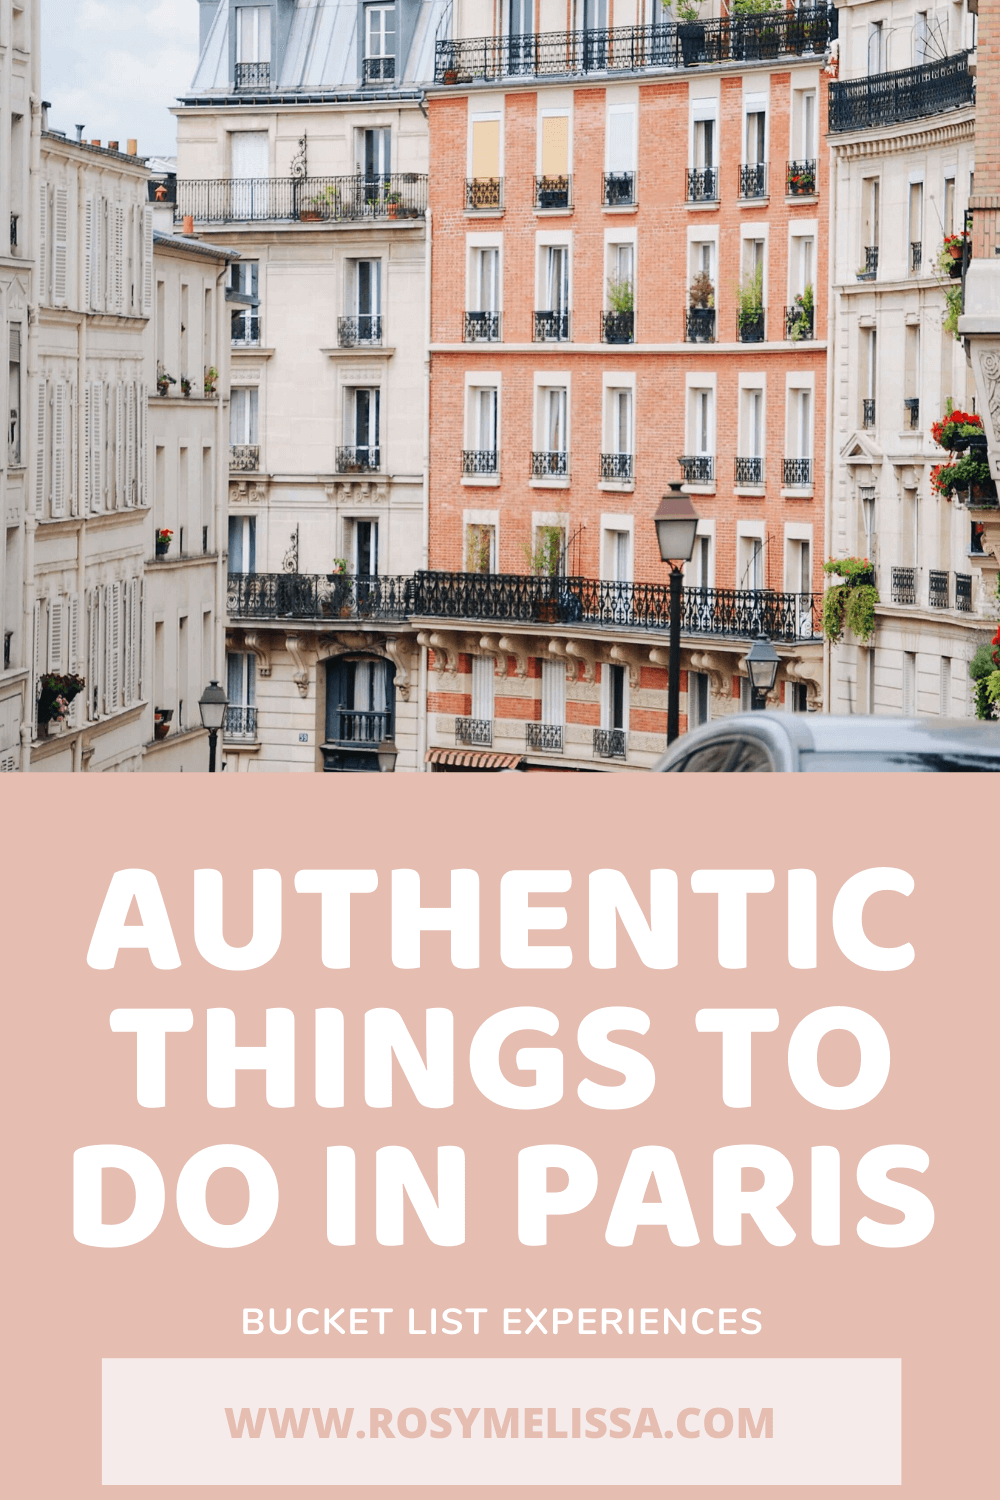 things to do in paris, bucket list experiences, paris city in france, where to go in paris, activities in paris, montmartre, le marais, neighbourhoods